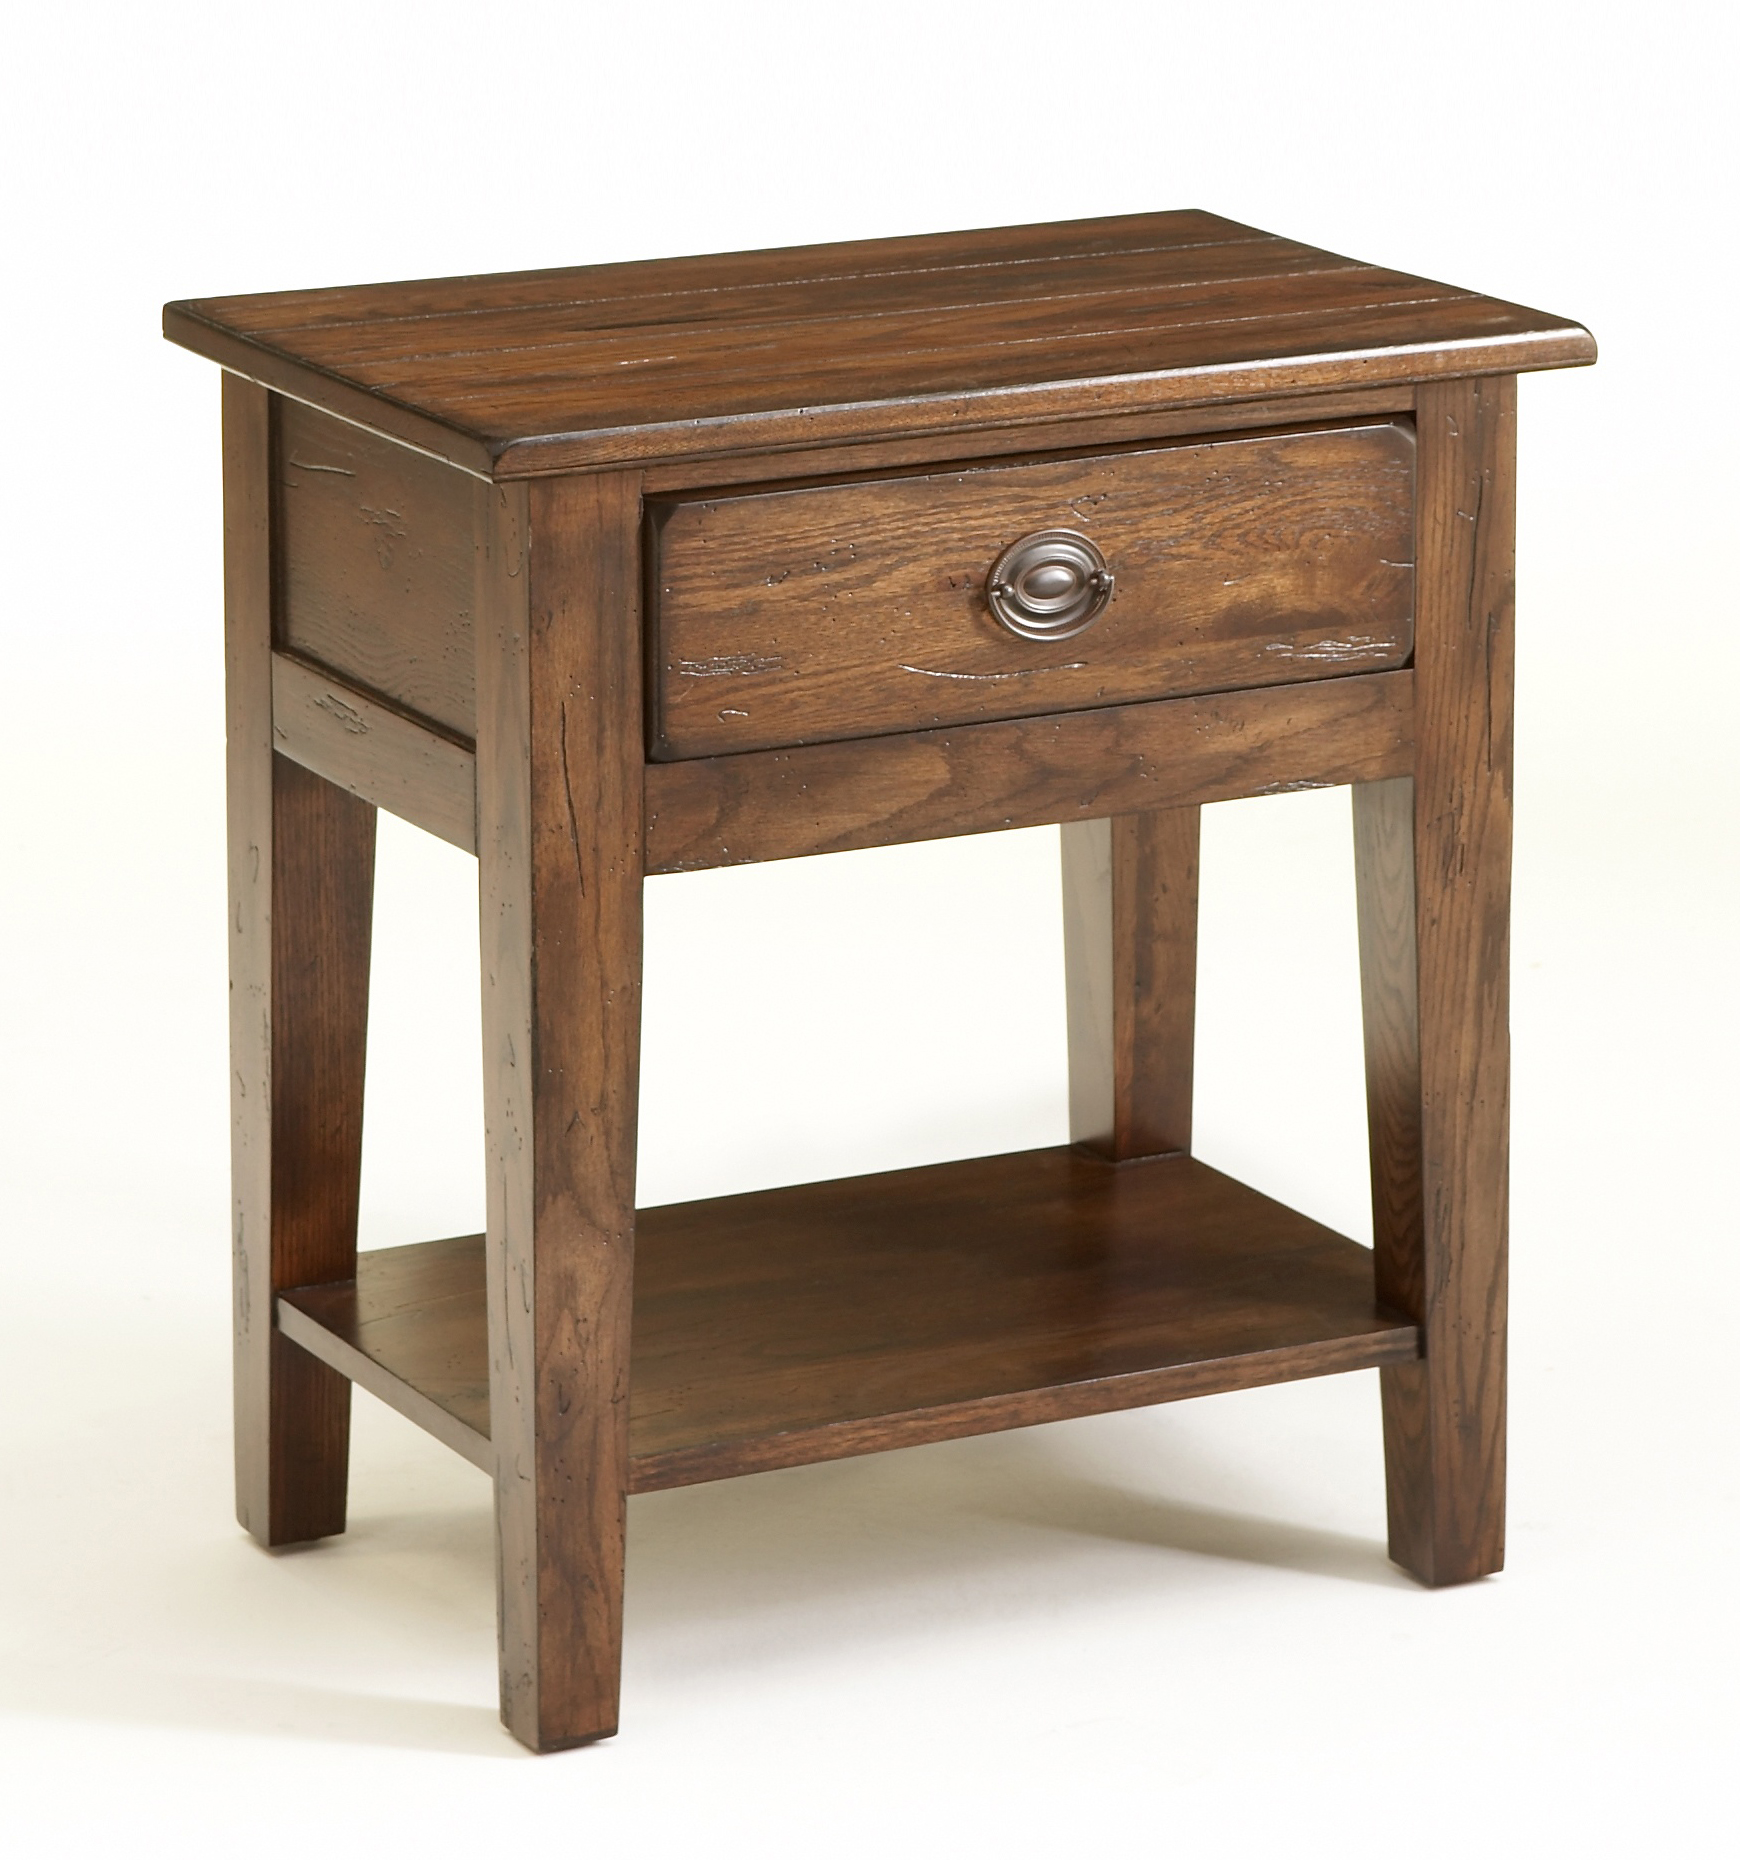 Inspire Your Home with Charming Rustic Nightstand: Enticing Solid Wood Night Stands | Interesting Rustic Nightstand